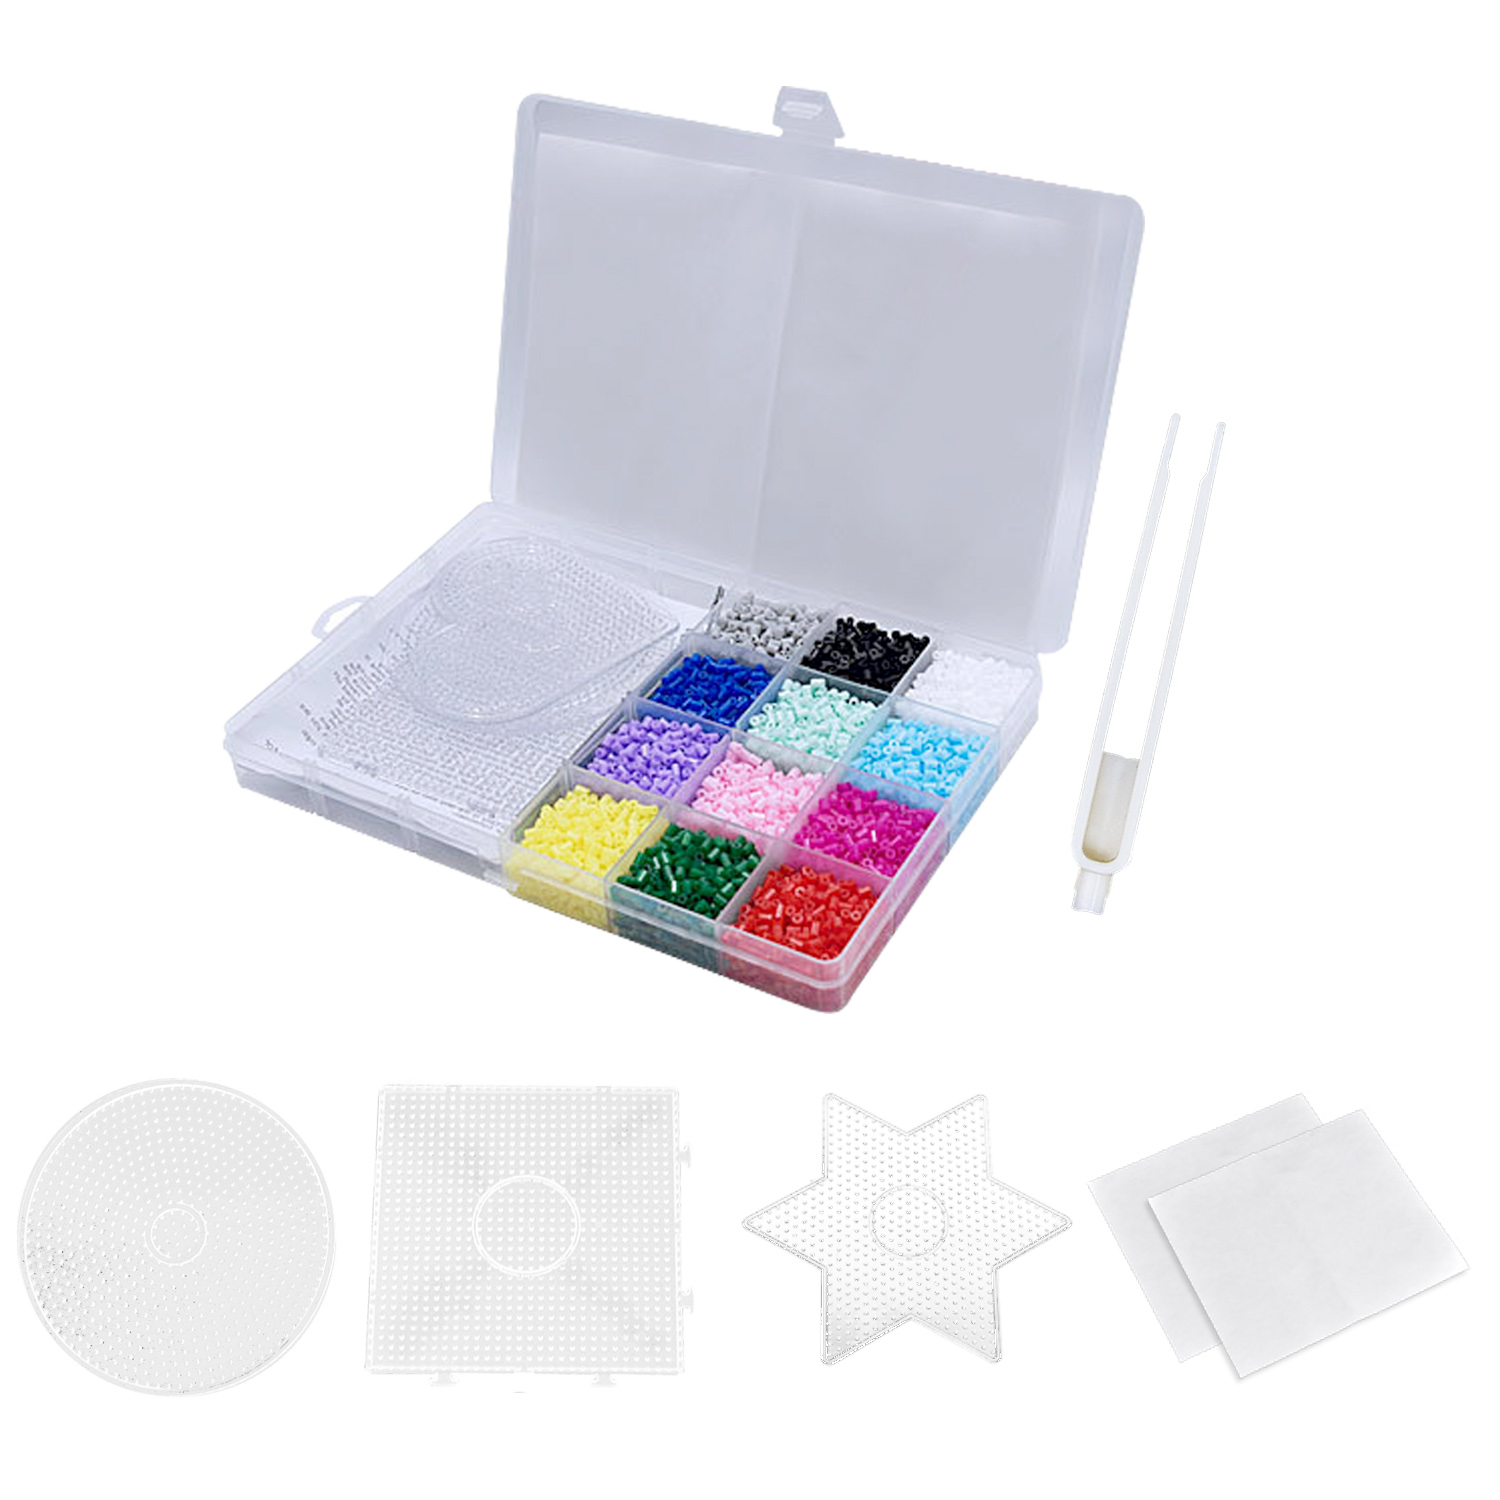 6500pcs 12 Colors Craft Fuse Beads Pegboard Kit 3pcs Pegboards  2pcs Ironing Paper 1pcs Tweezer Kids DIY Art Craft Handcraft Toy